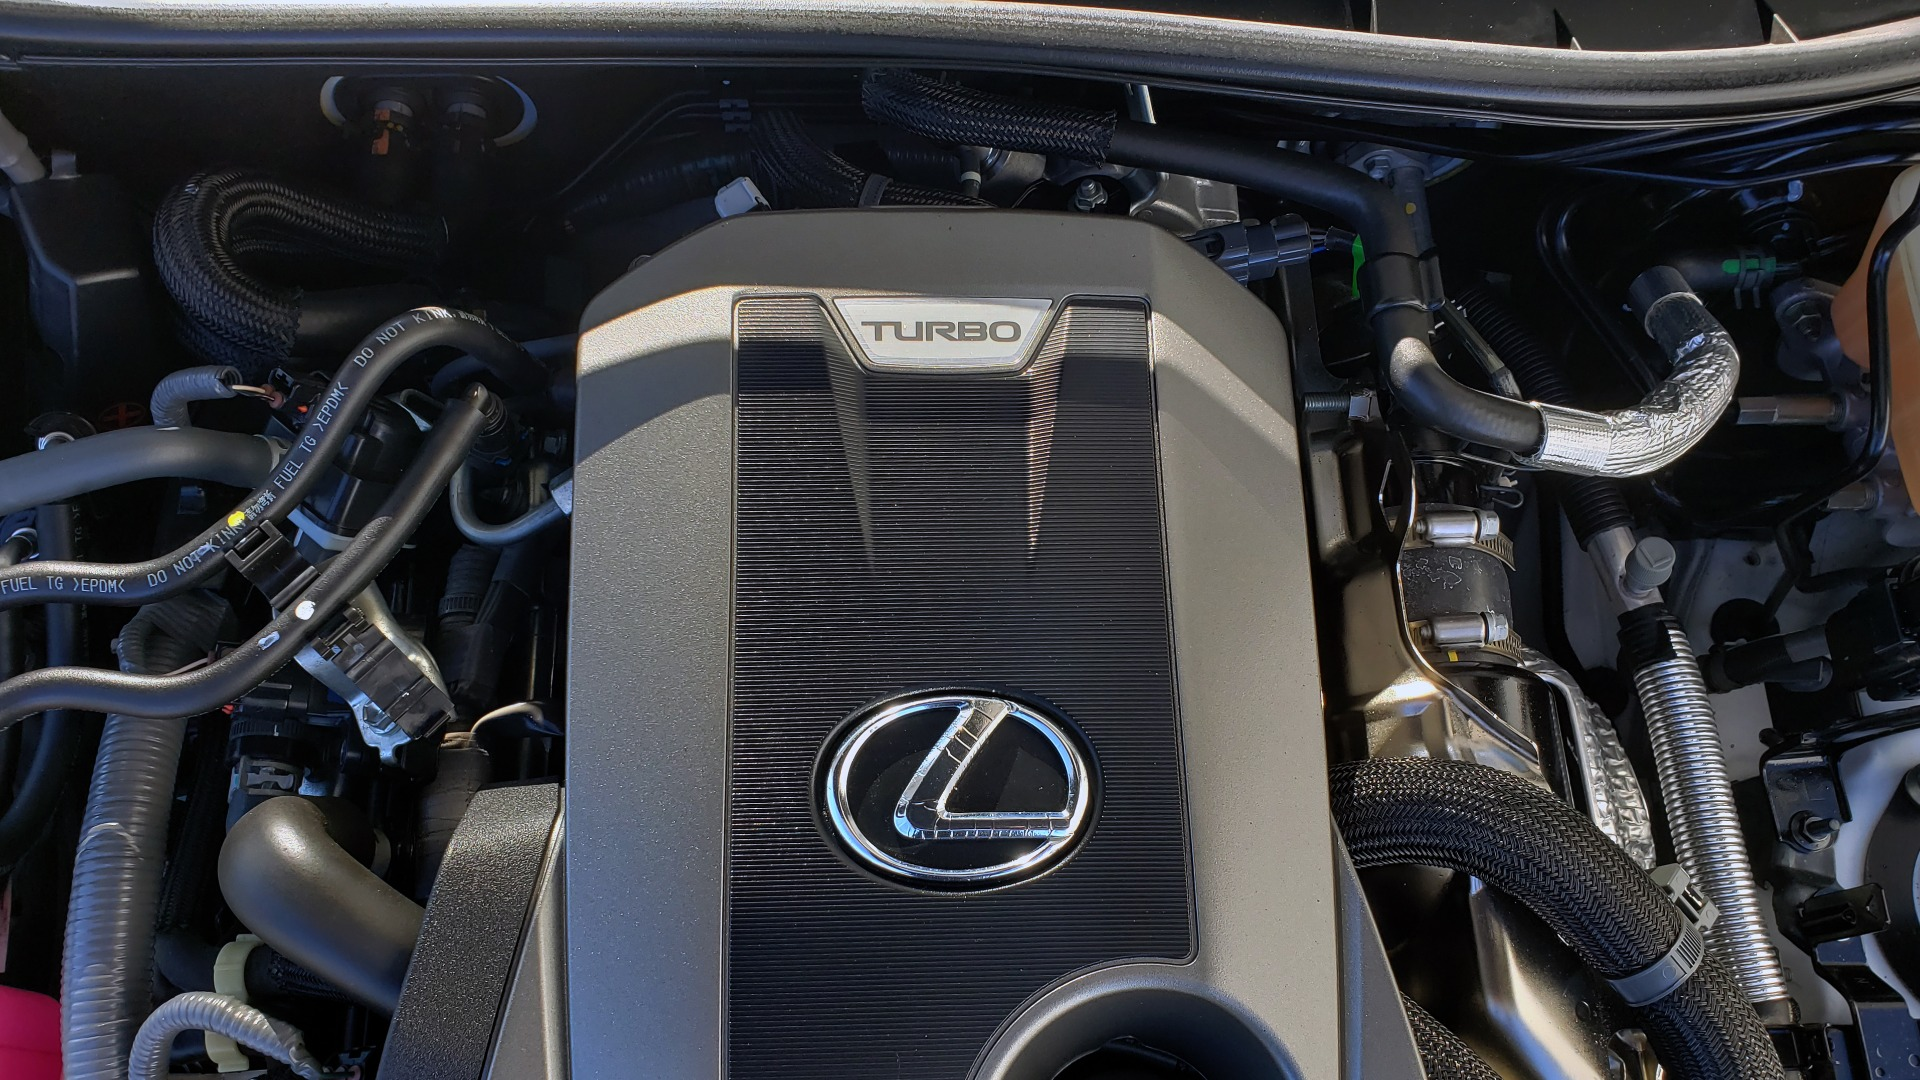 Used 2018 Lexus IS 300 F-SPORT / BSM / SUNROOF / REARVIEW / 18IN WHEELS for sale Sold at Formula Imports in Charlotte NC 28227 12